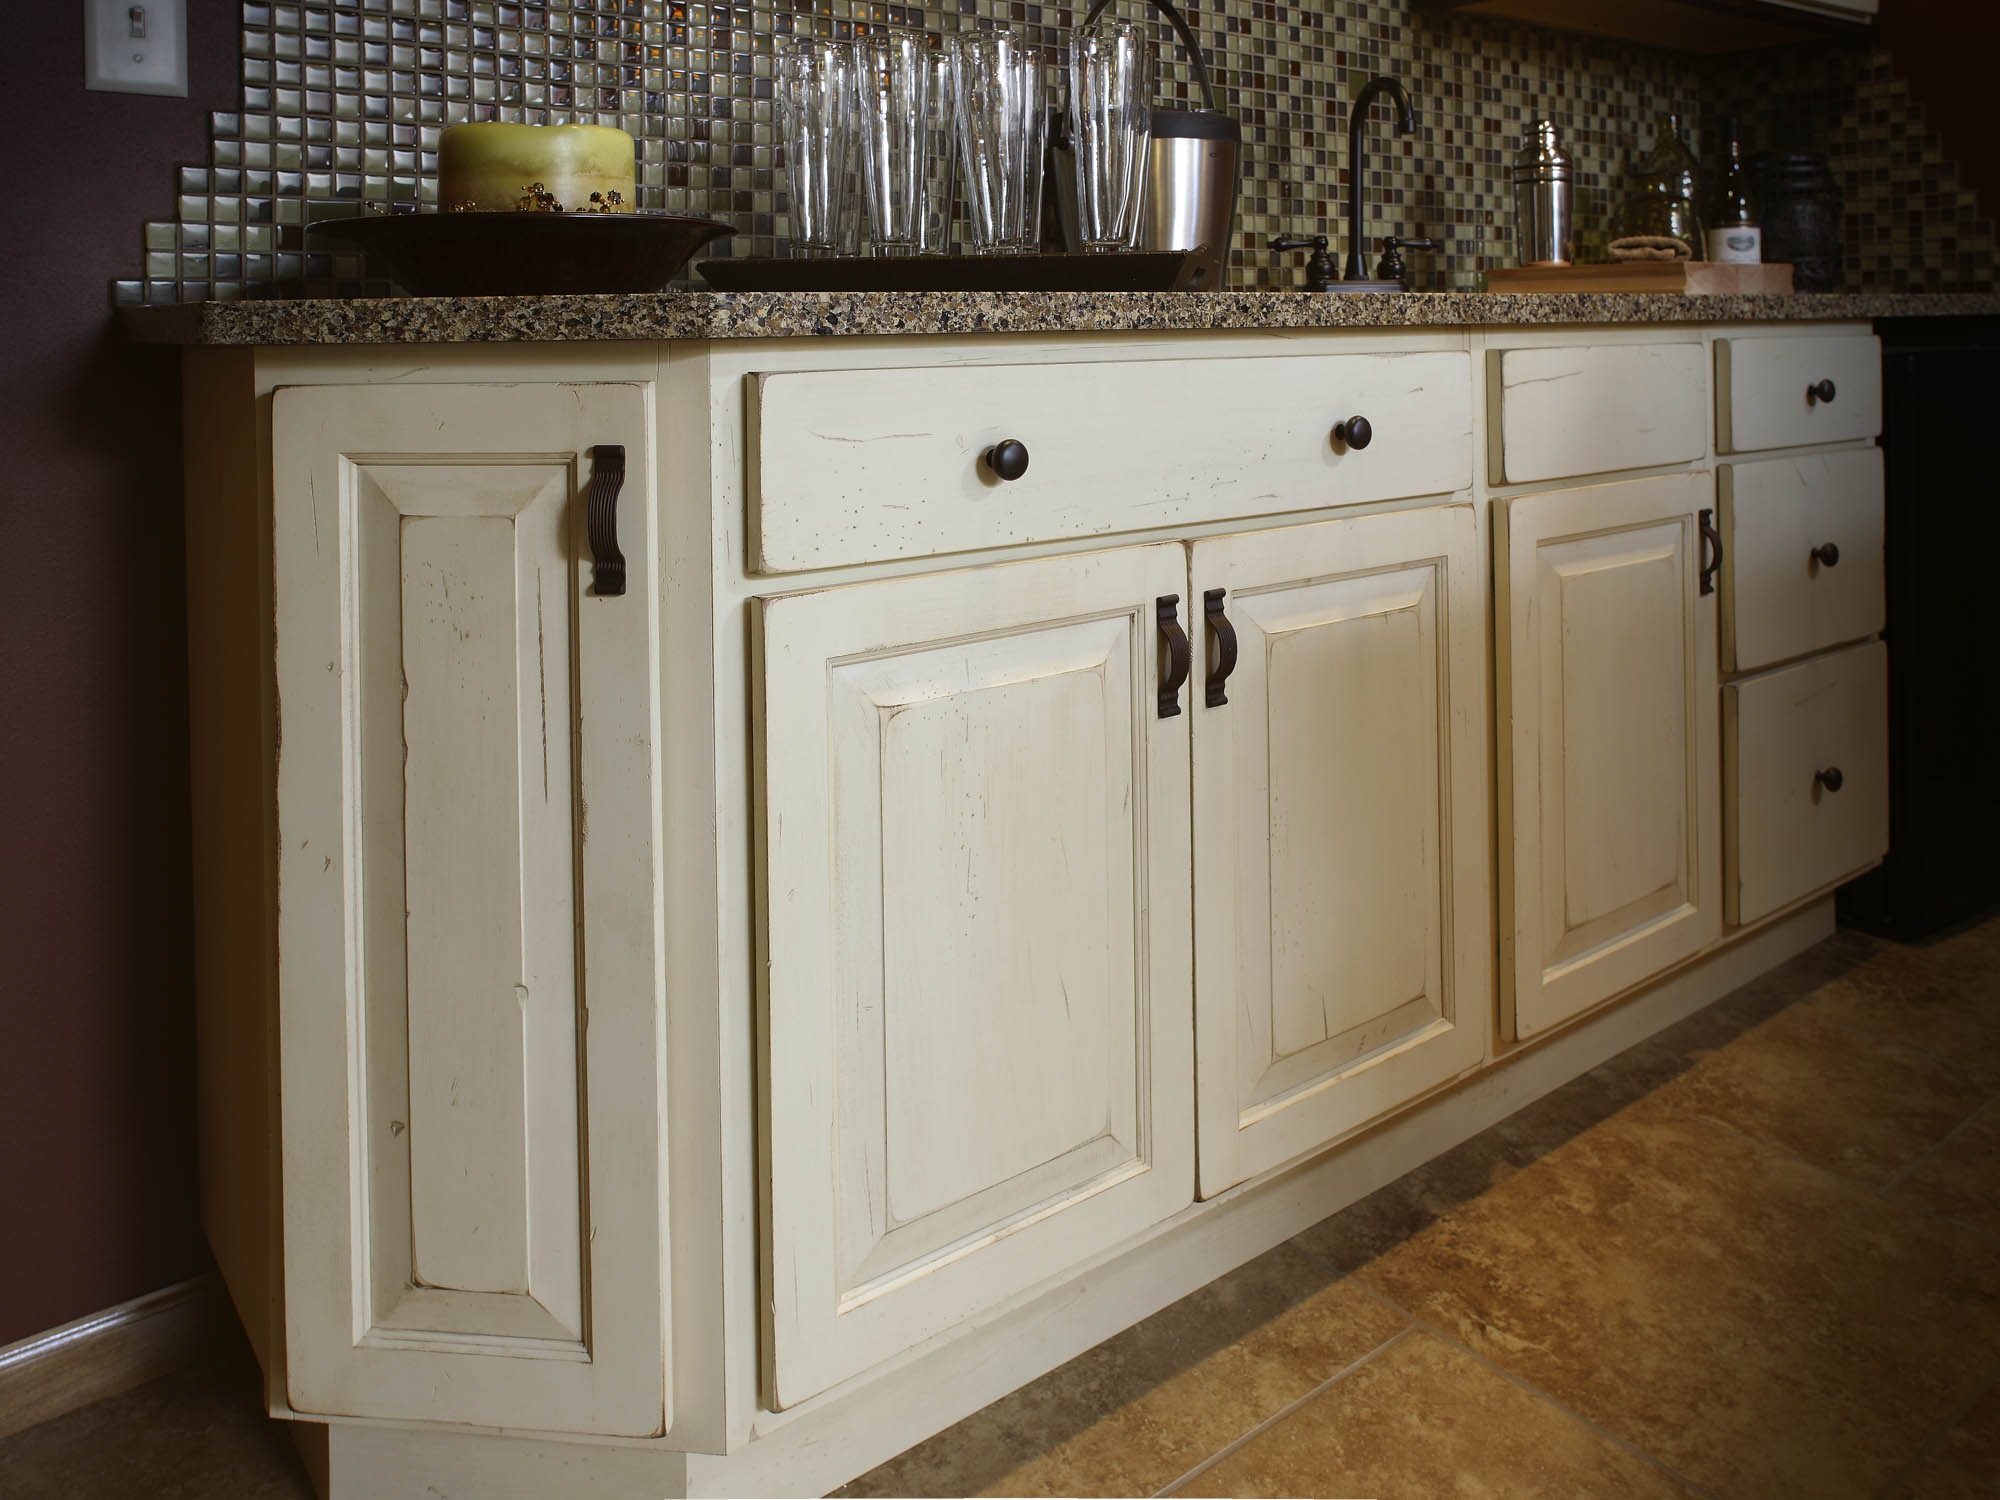 Painted family room wet bar in Vintage Linen by Showplace Cabinetry - view 2